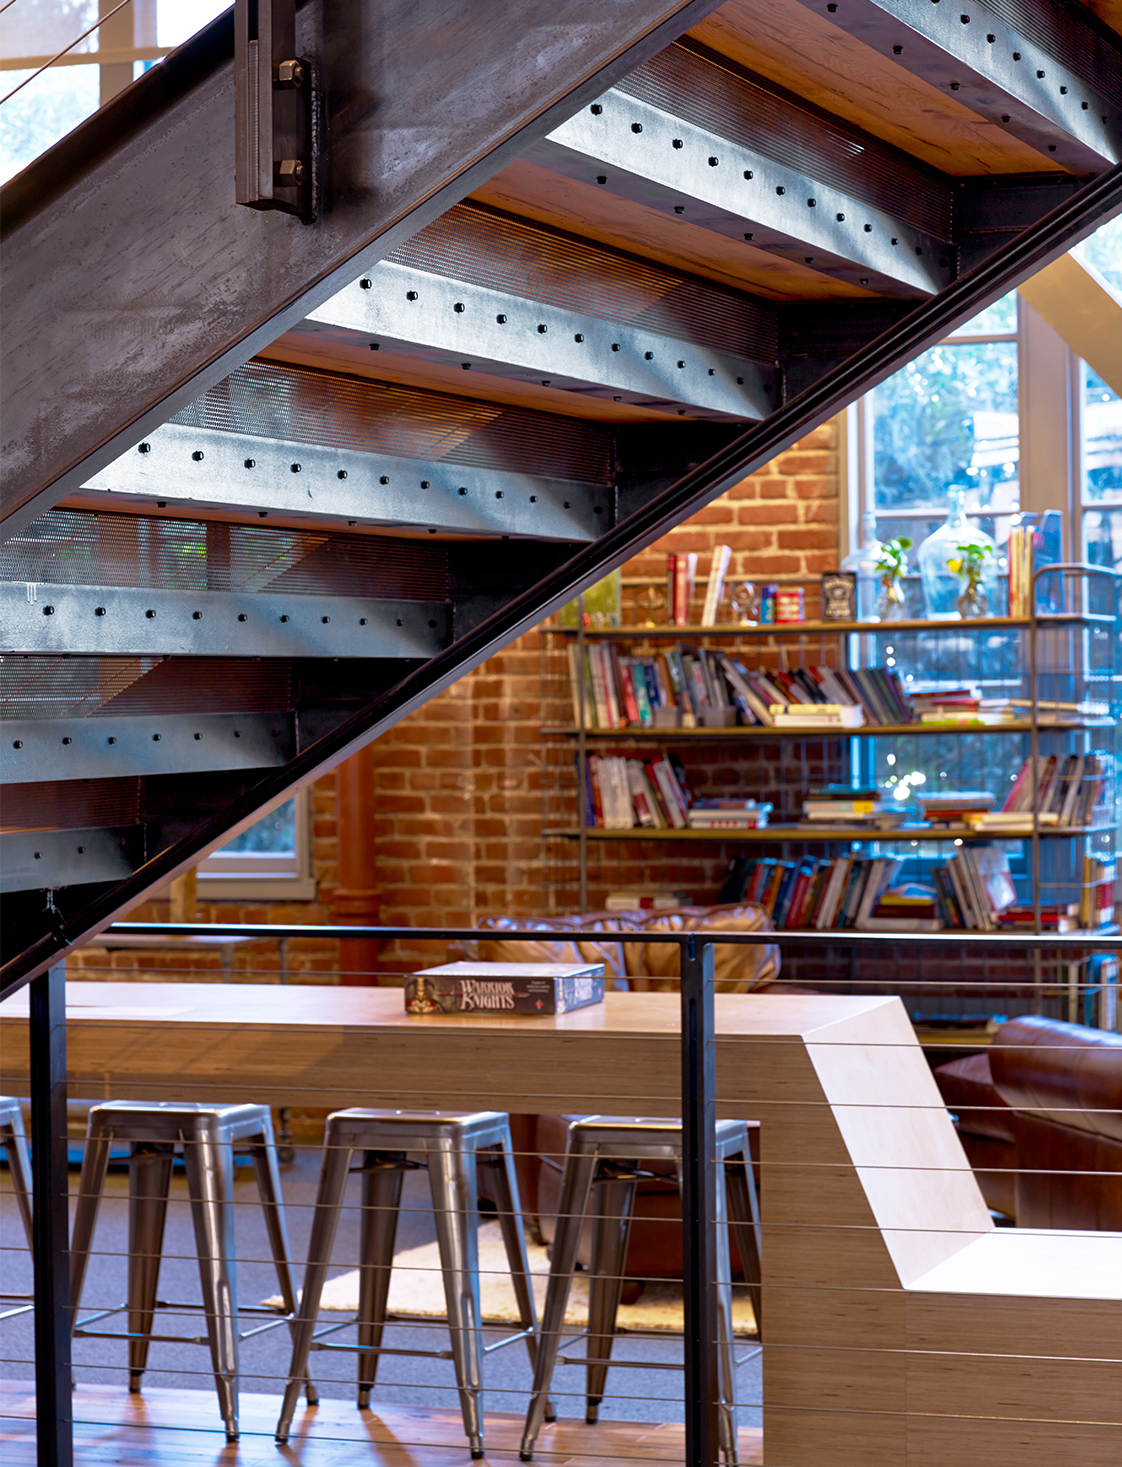 Heroku Office Interior Stairs with Metal Detailing and Stools